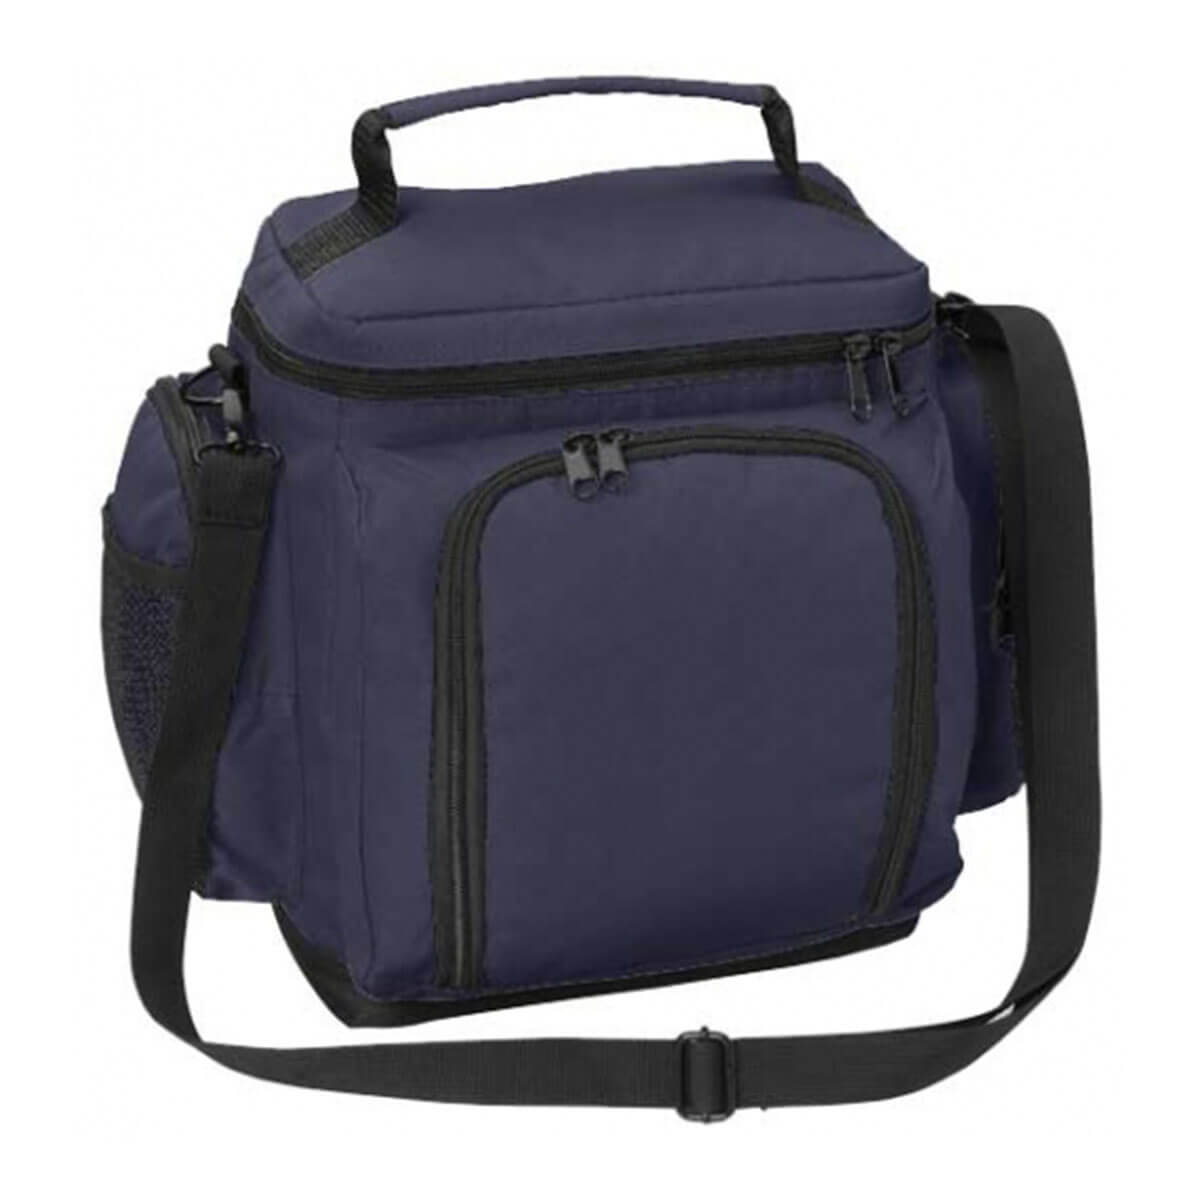 Deluxe Cooler Bag-Navy